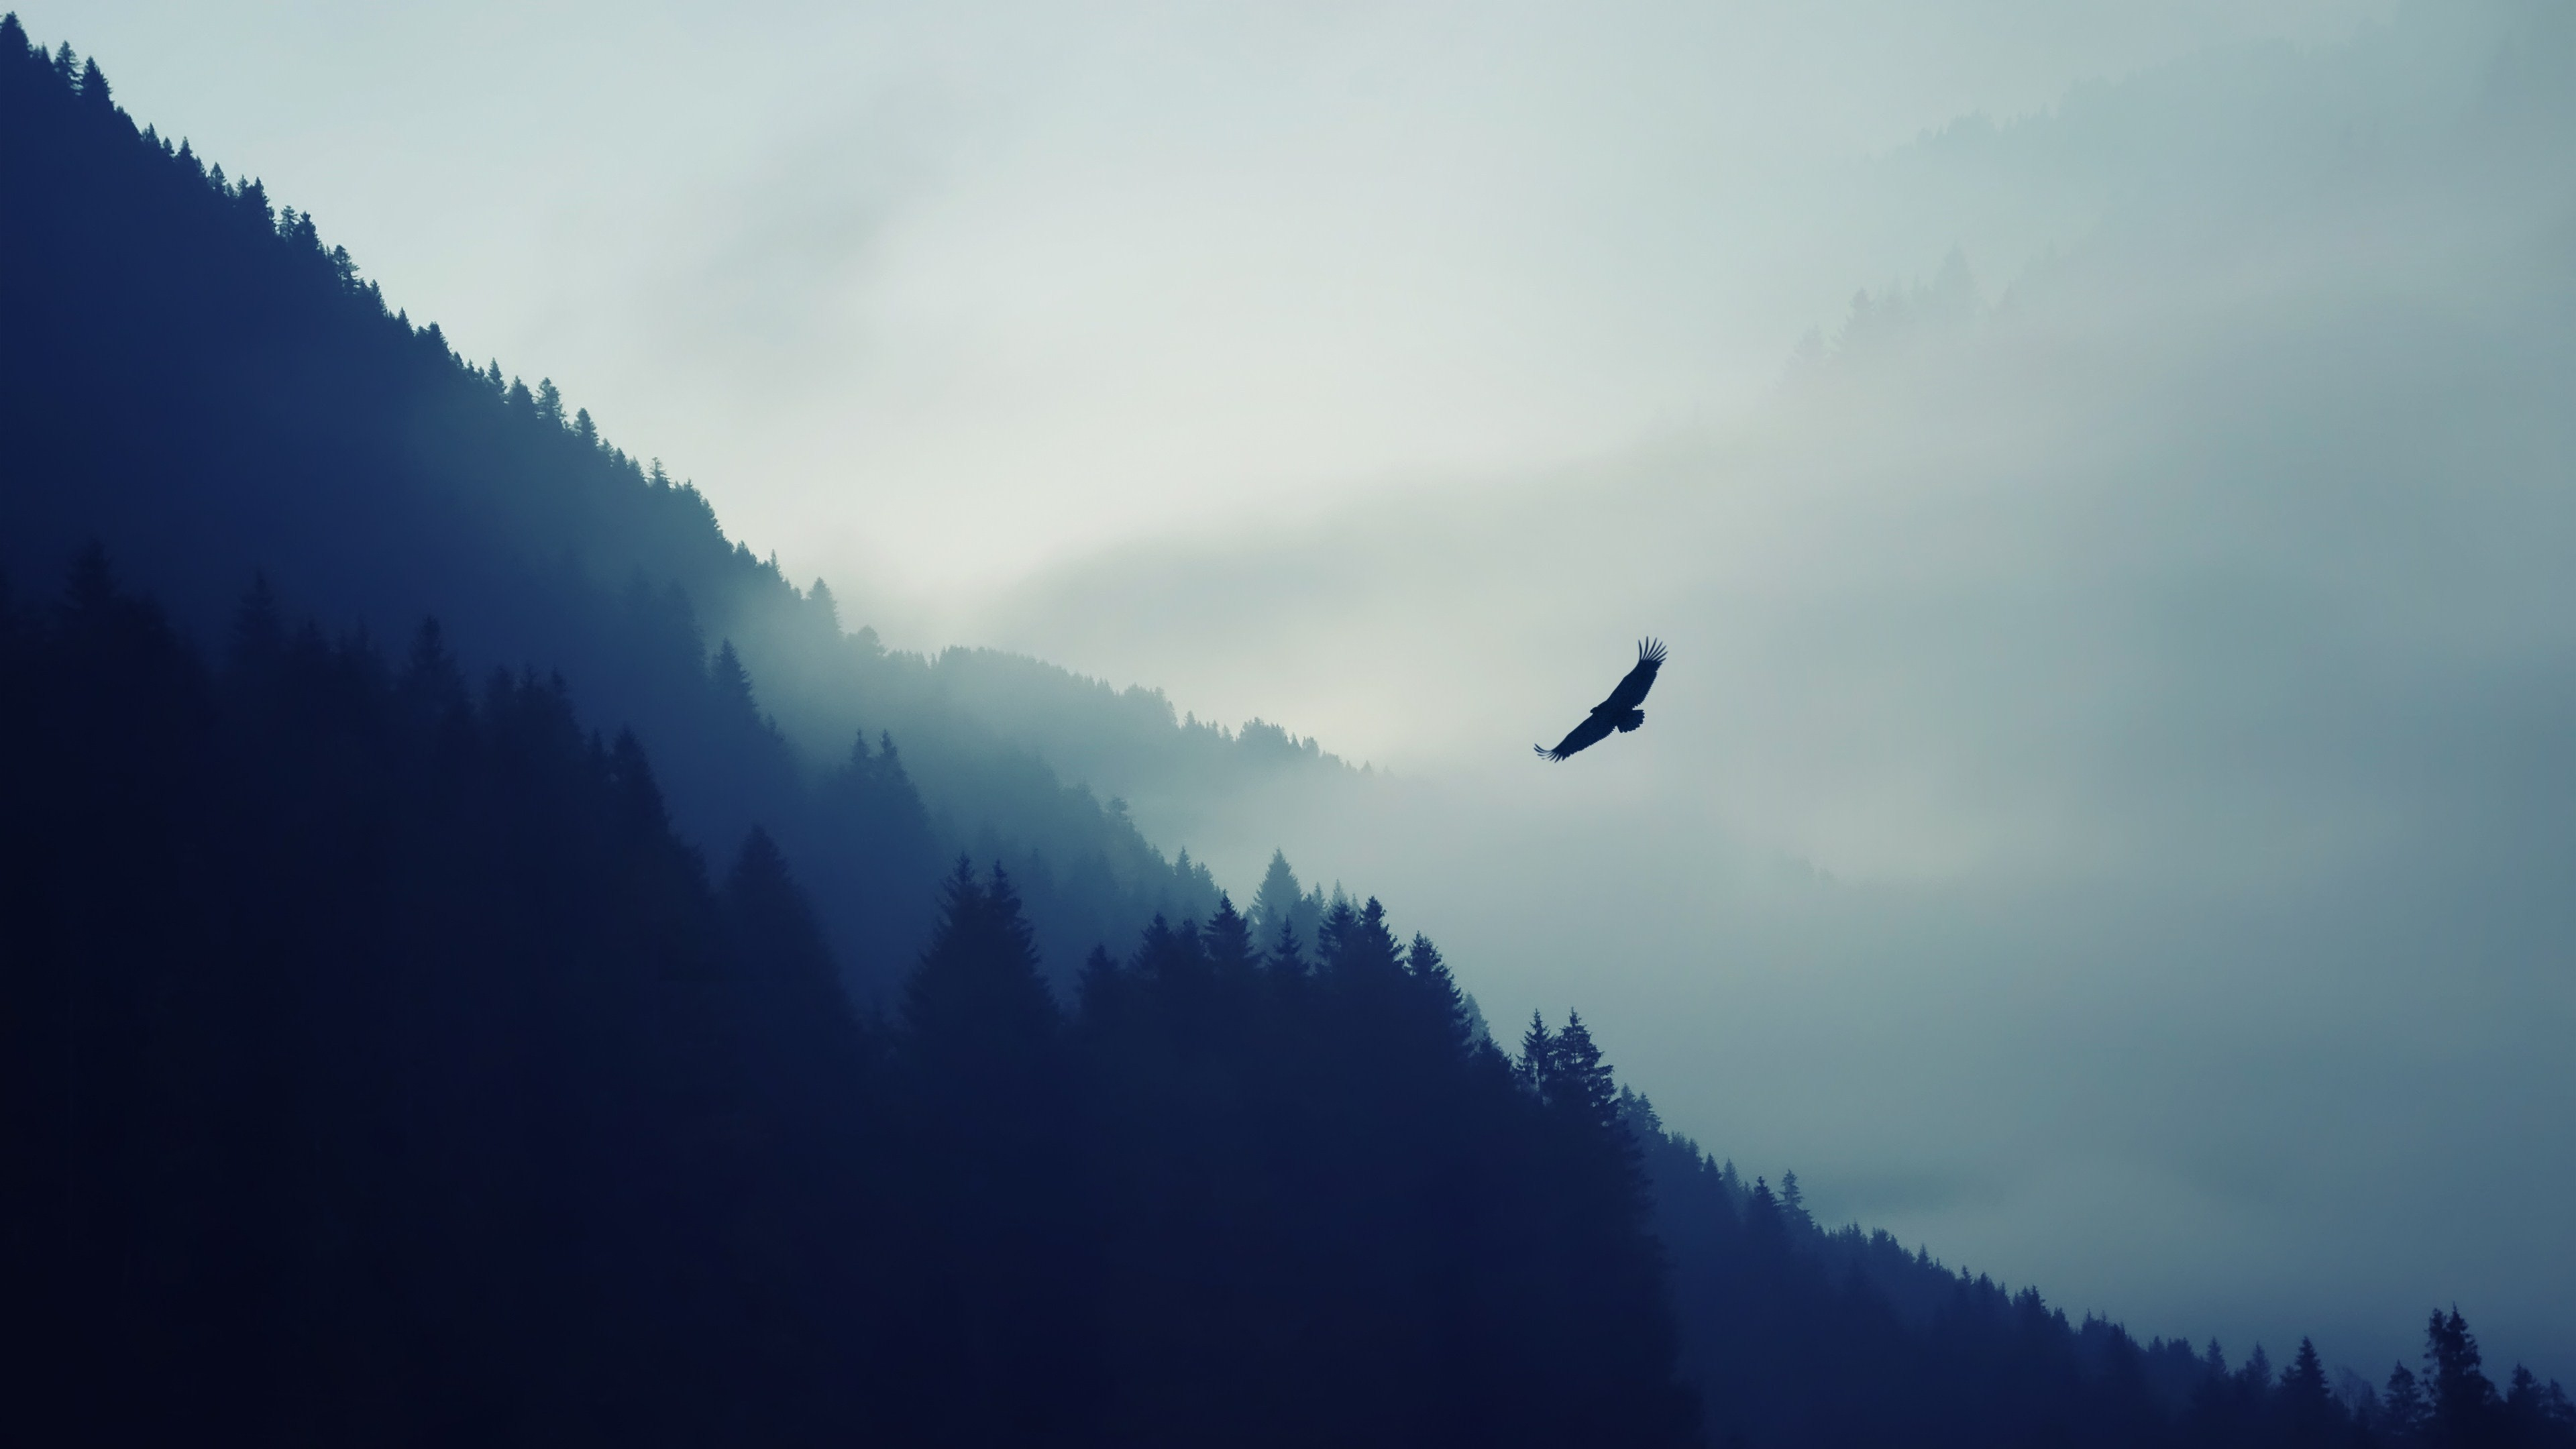 Wallpaper forest 5k 4k wallpaper fog eagle landscape for Wallpaper home 4k